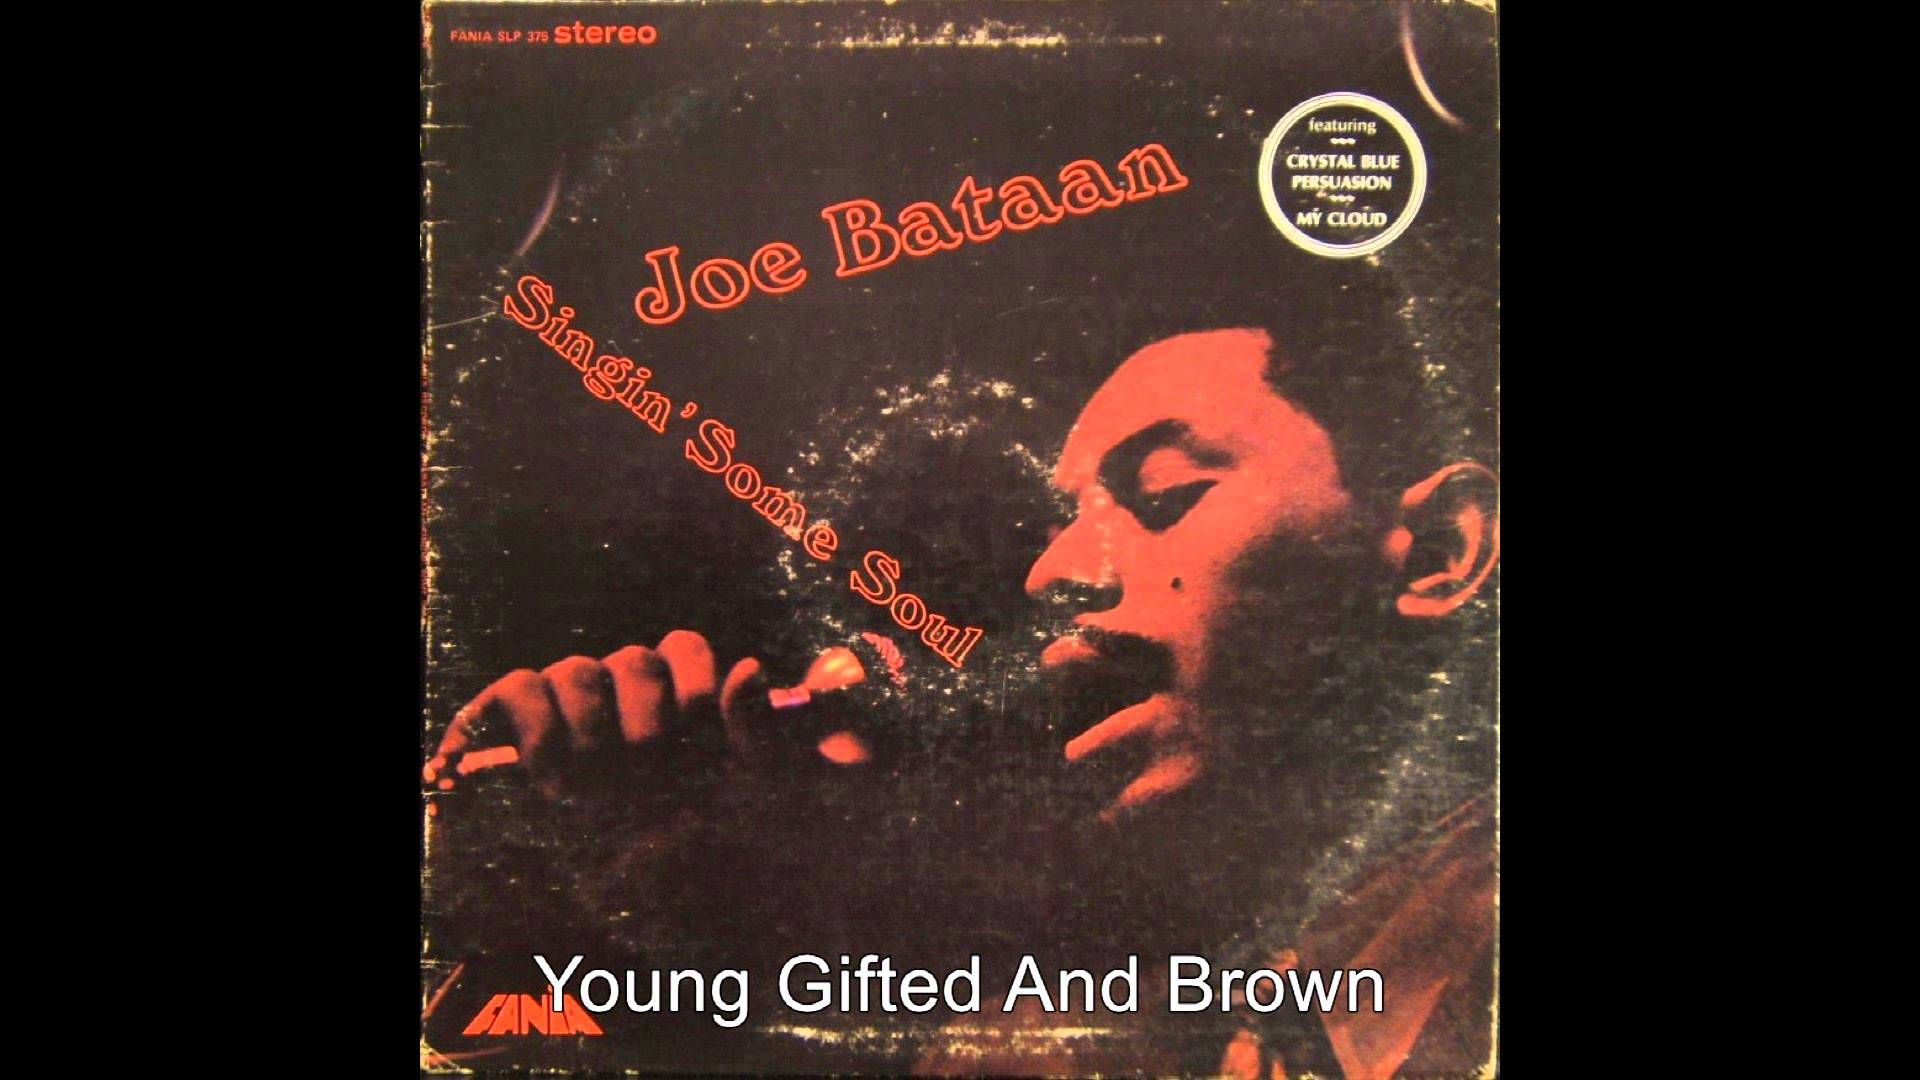 Joe Bataan - Young Gifted And Brown (HQ Audio)